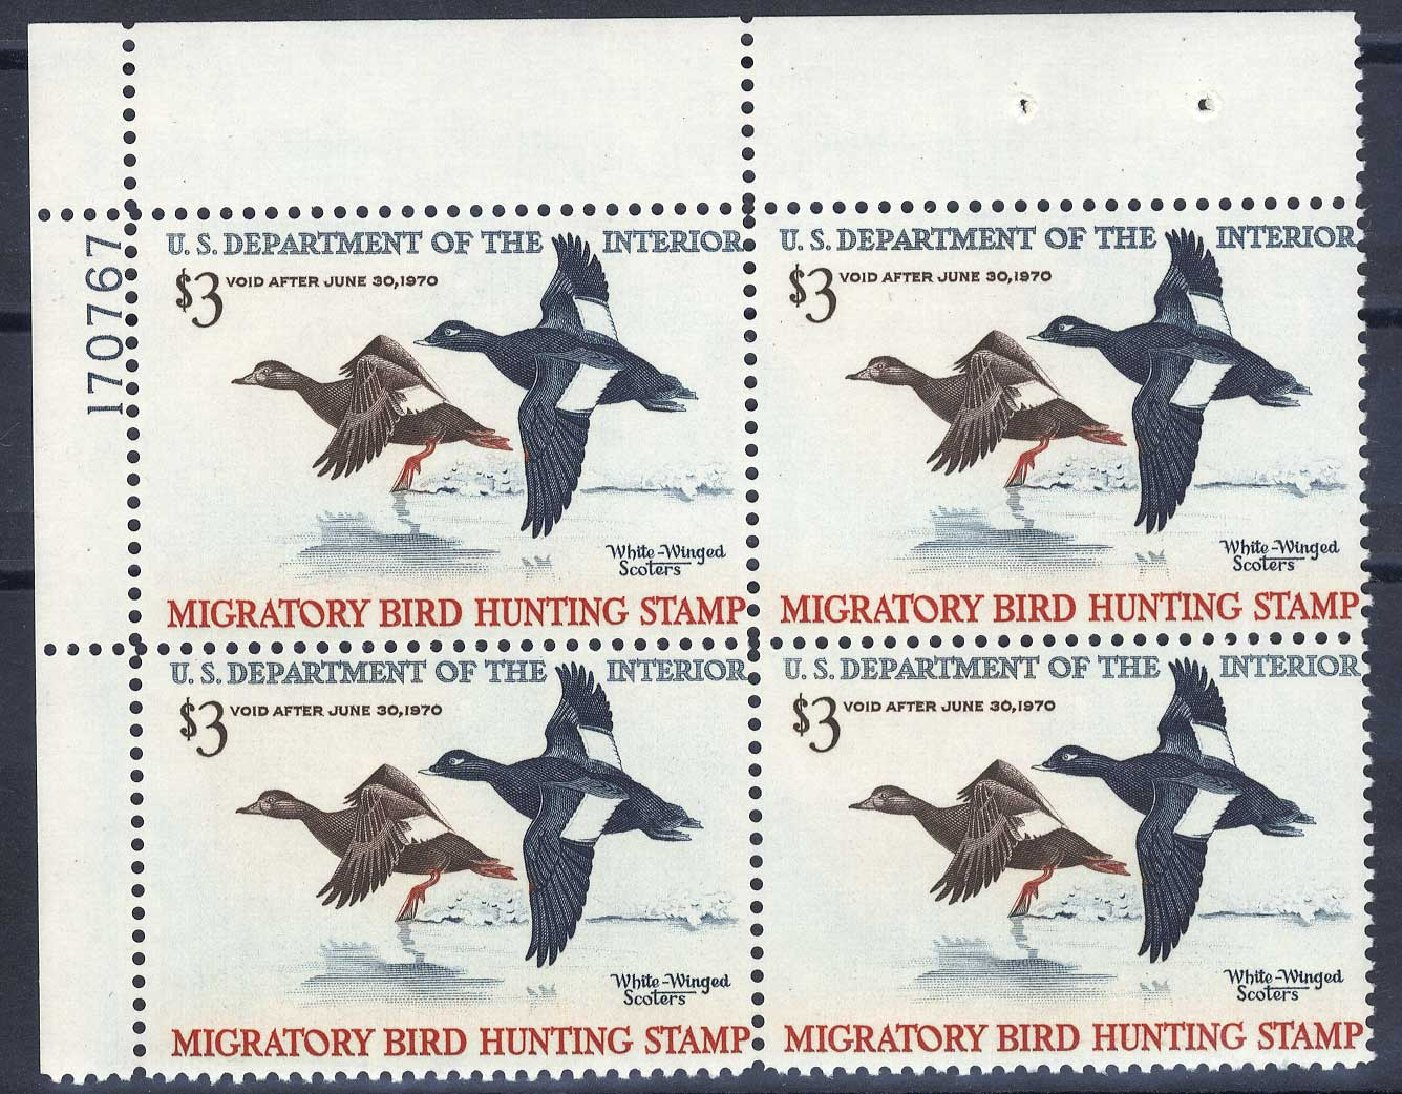 US Stamp Prices Scott Catalog RW36: US$3.00 1969 Federal Duck Hunting. Cherrystone Auctions, Jul 2008, Sale 200807, Lot 105